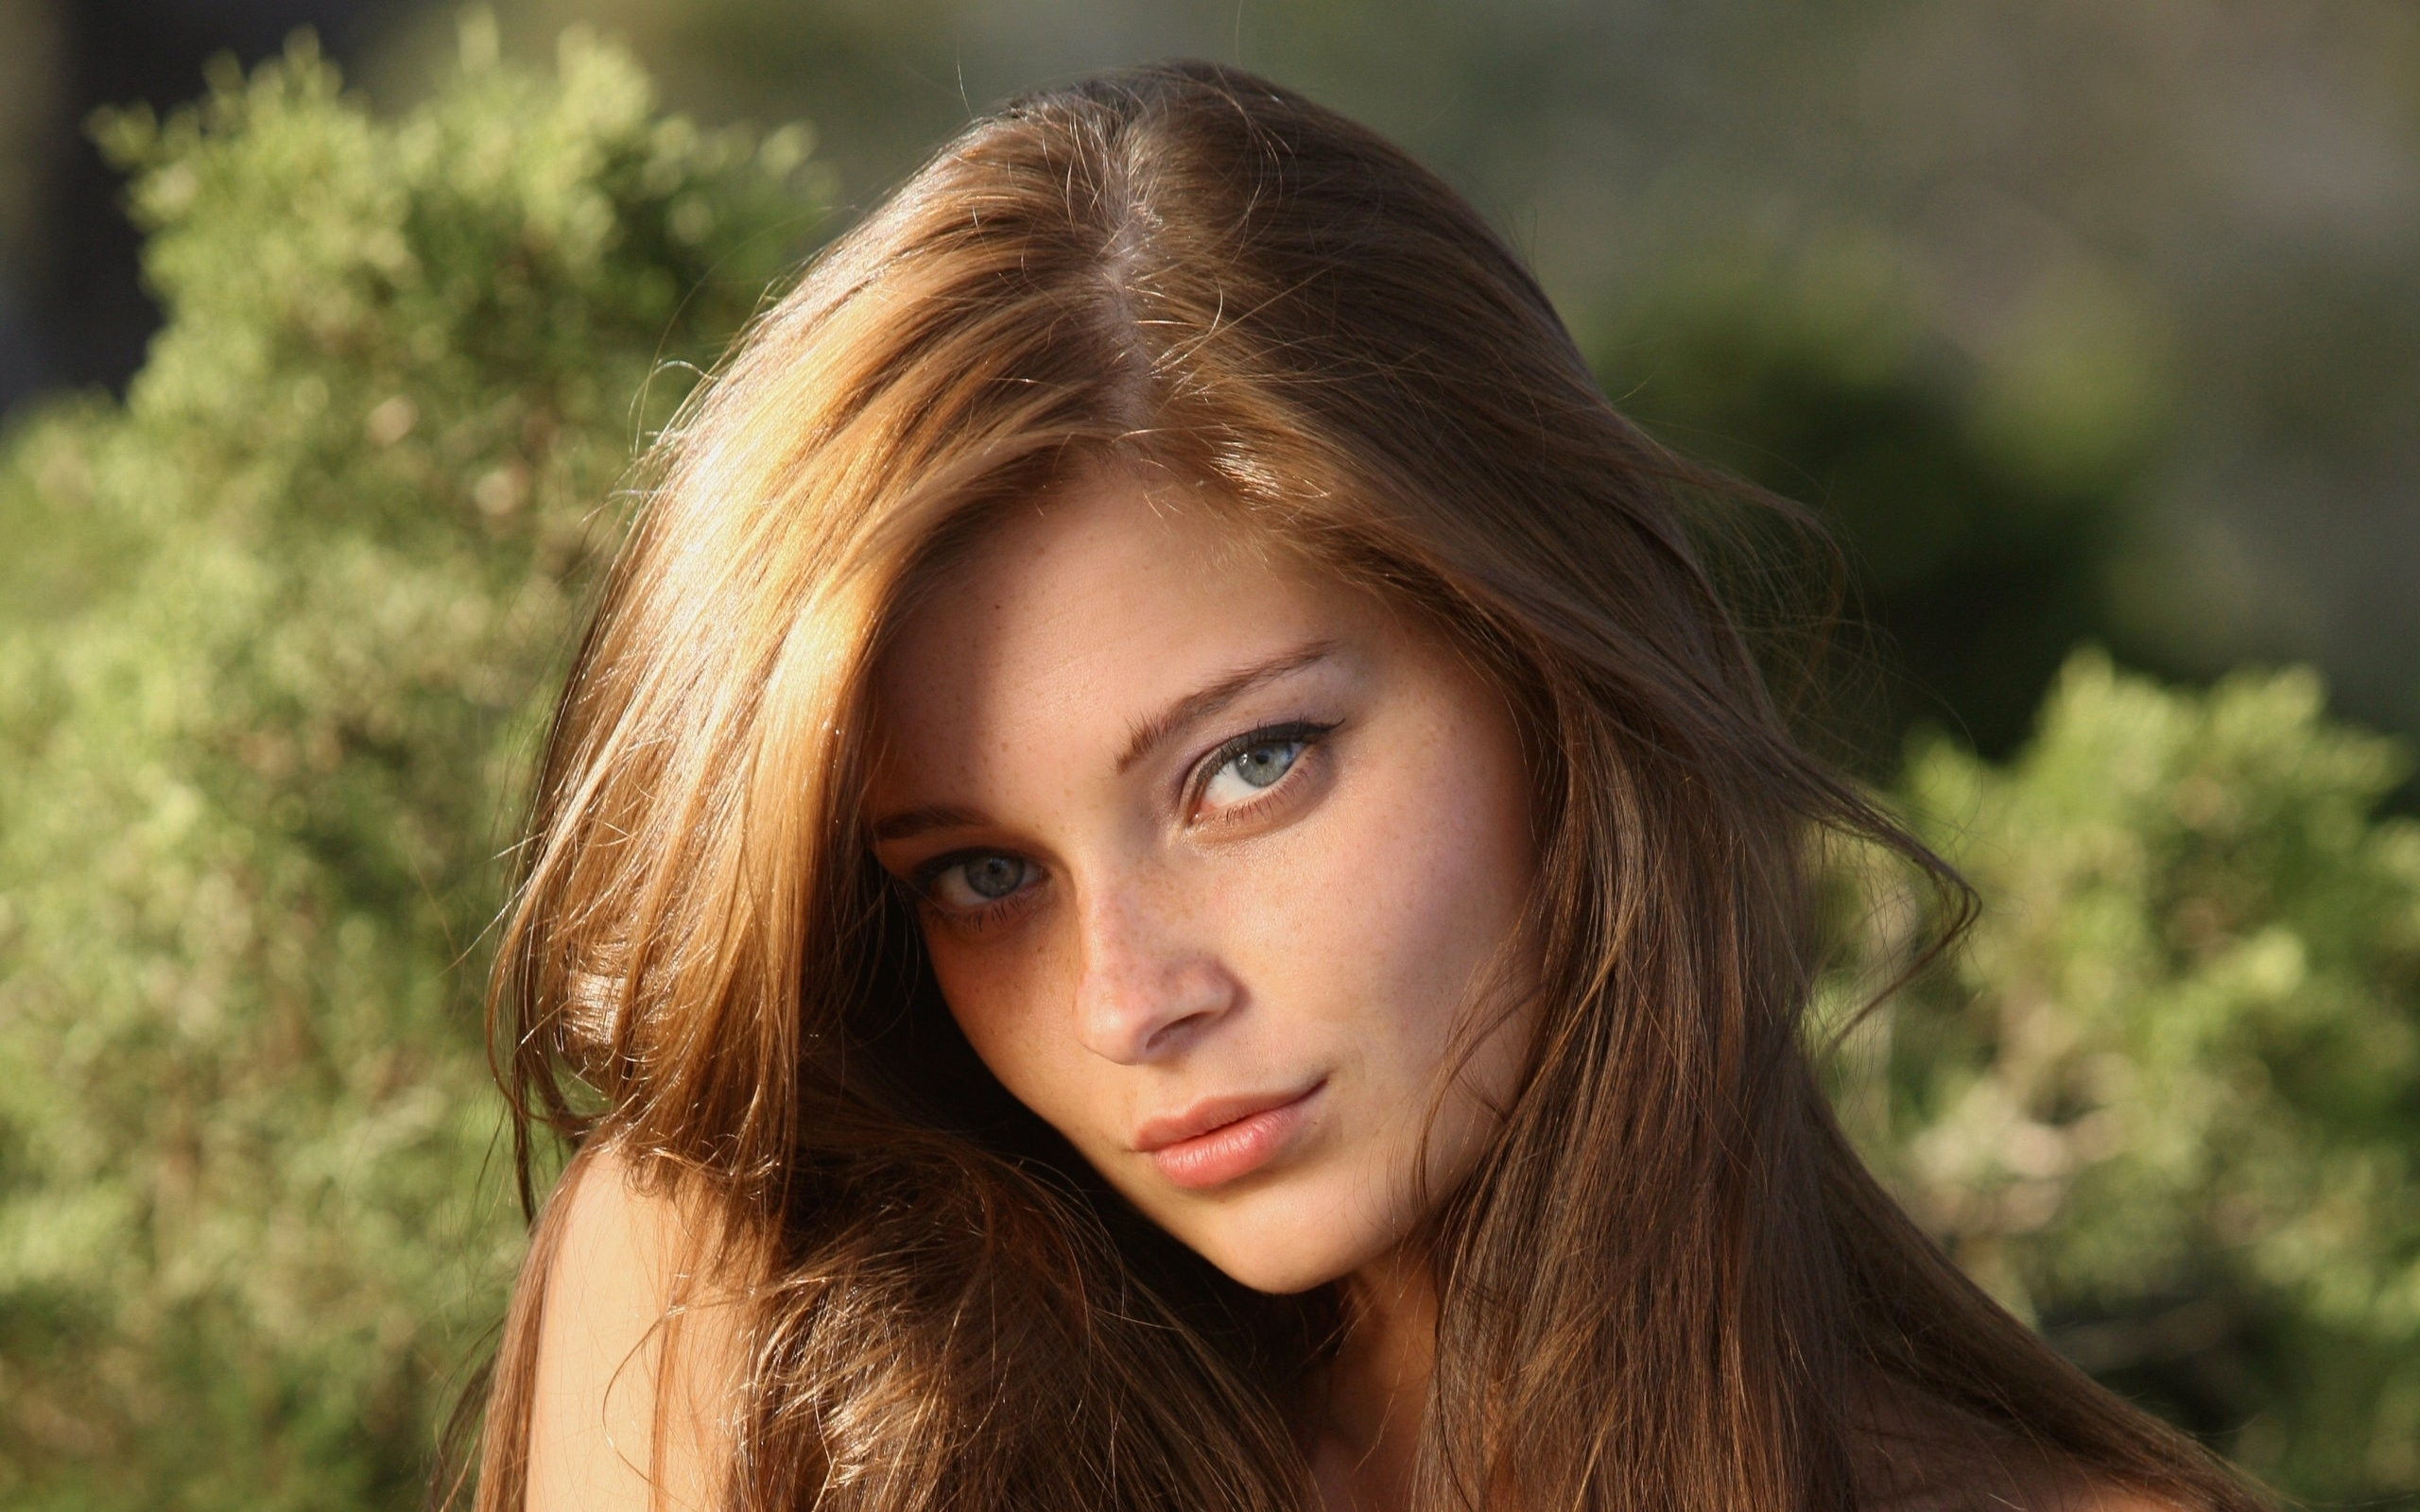 Image result for teenage girl with light brown hair and green eyes